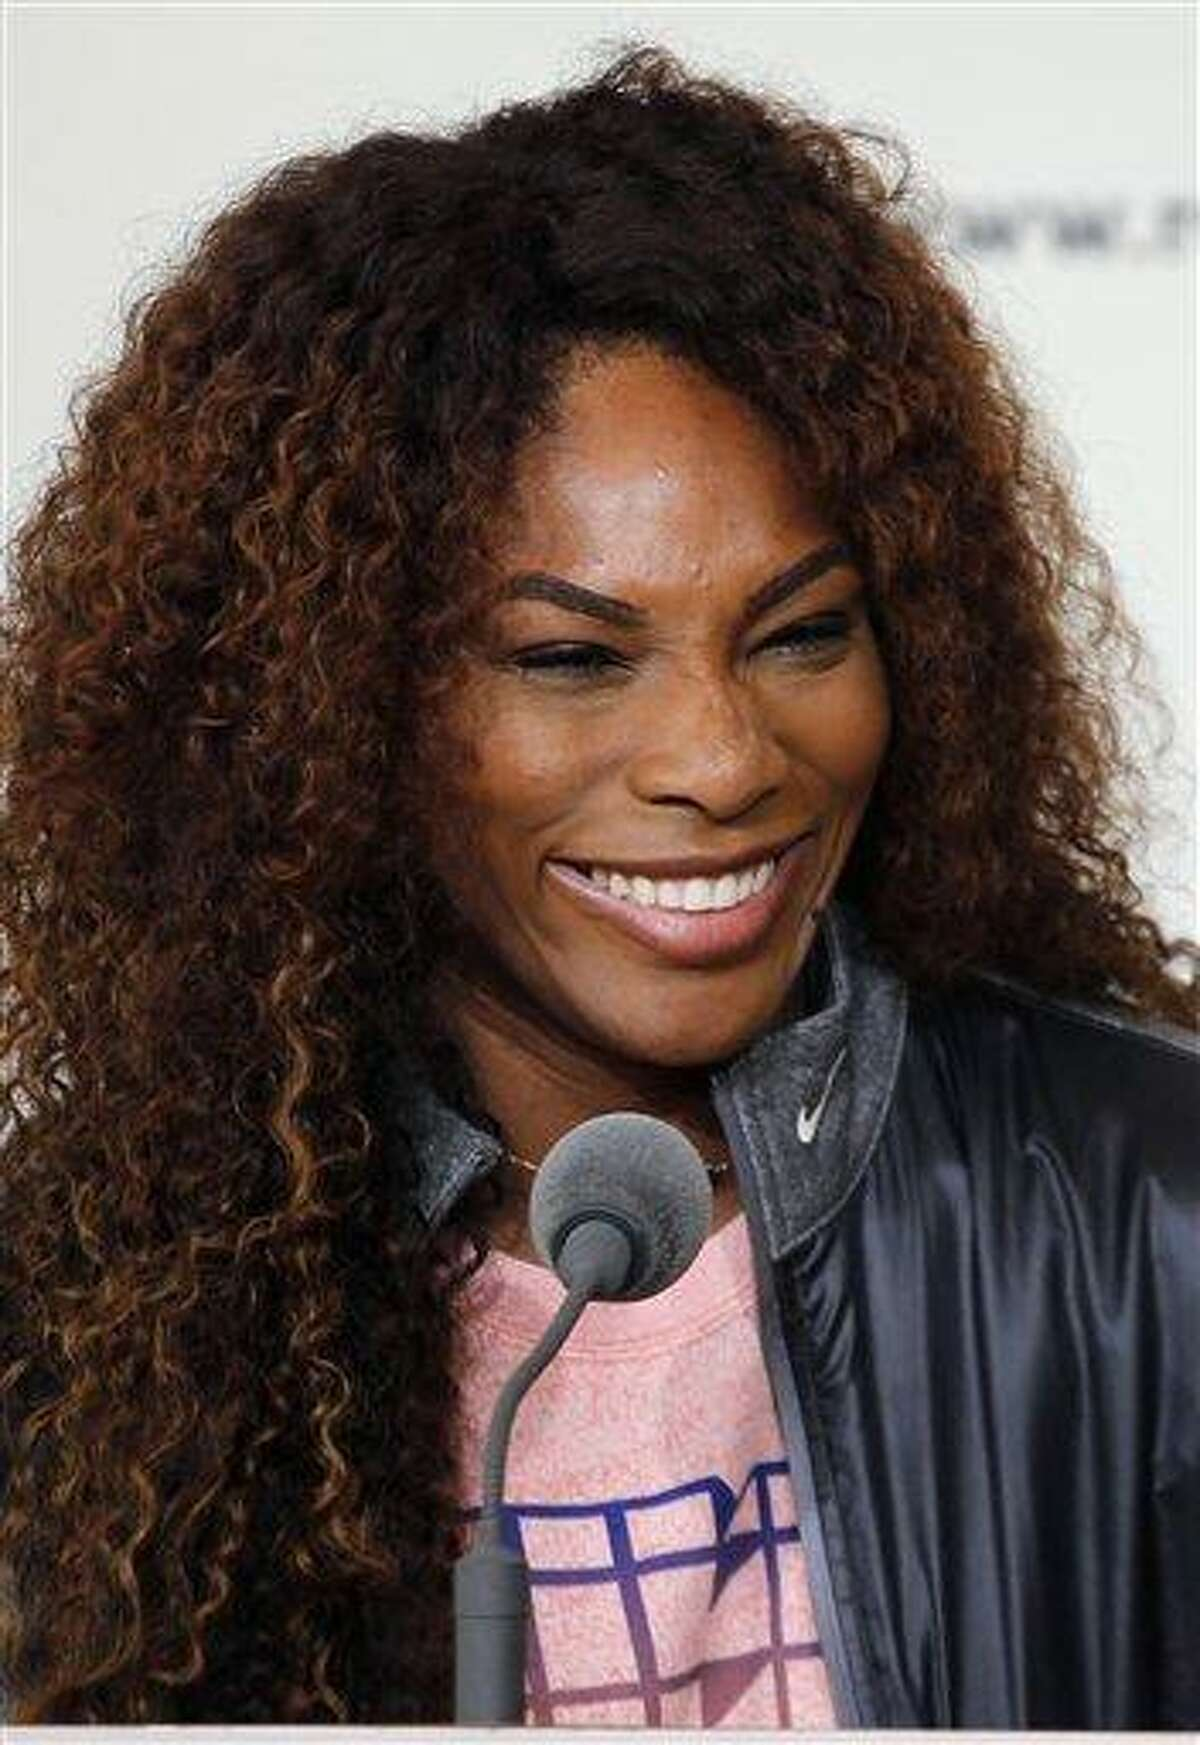 Serena Williams, of the United States smiles during a press conference for the 2013 French Open tennis tournament, at Roland Garros stadium in Paris, Friday May, 24, 2013. (AP Photo/Christophe Ena)